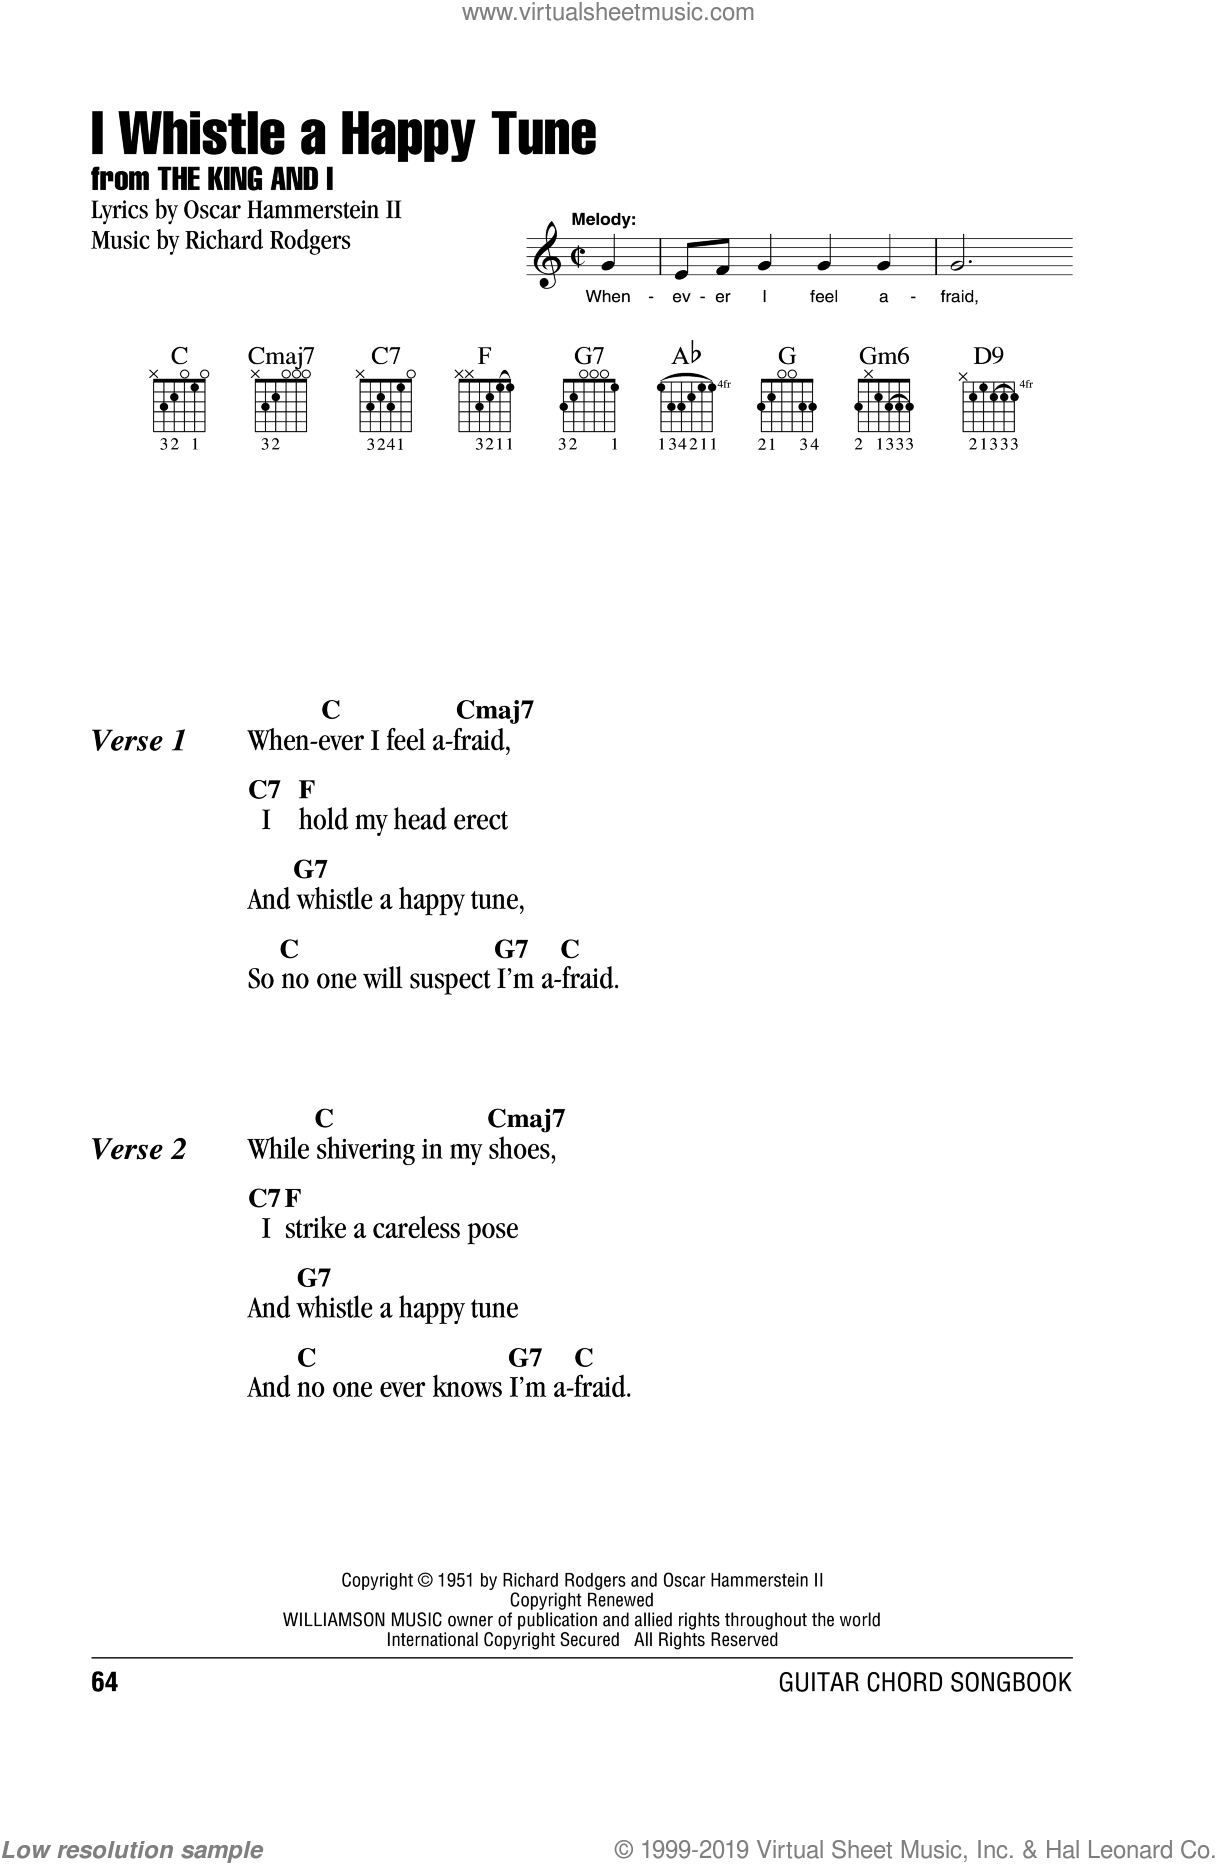 I Whistle A Happy Tune sheet music for guitar (chords) by Richard Rodgers